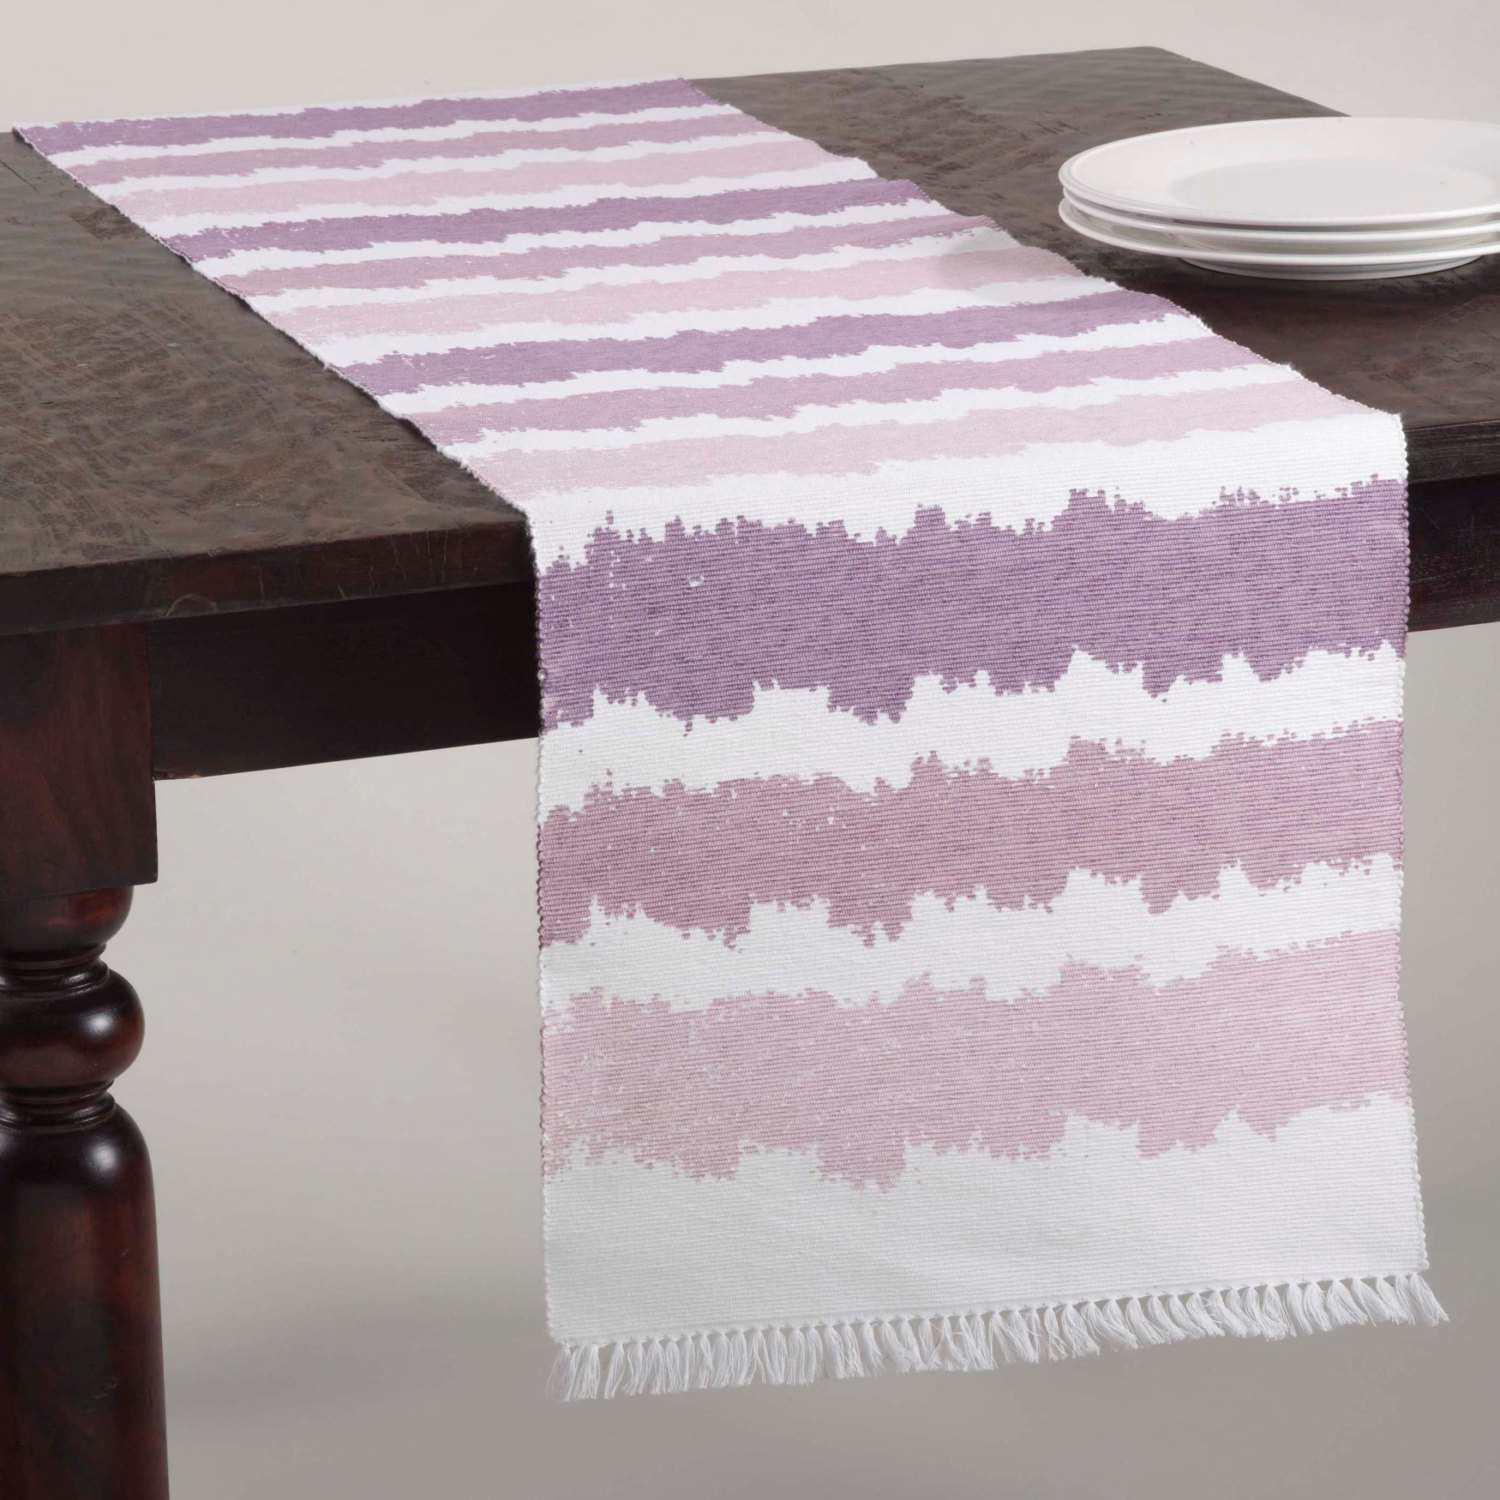 Ombre table runner from Etsy shop I Love Craftsy